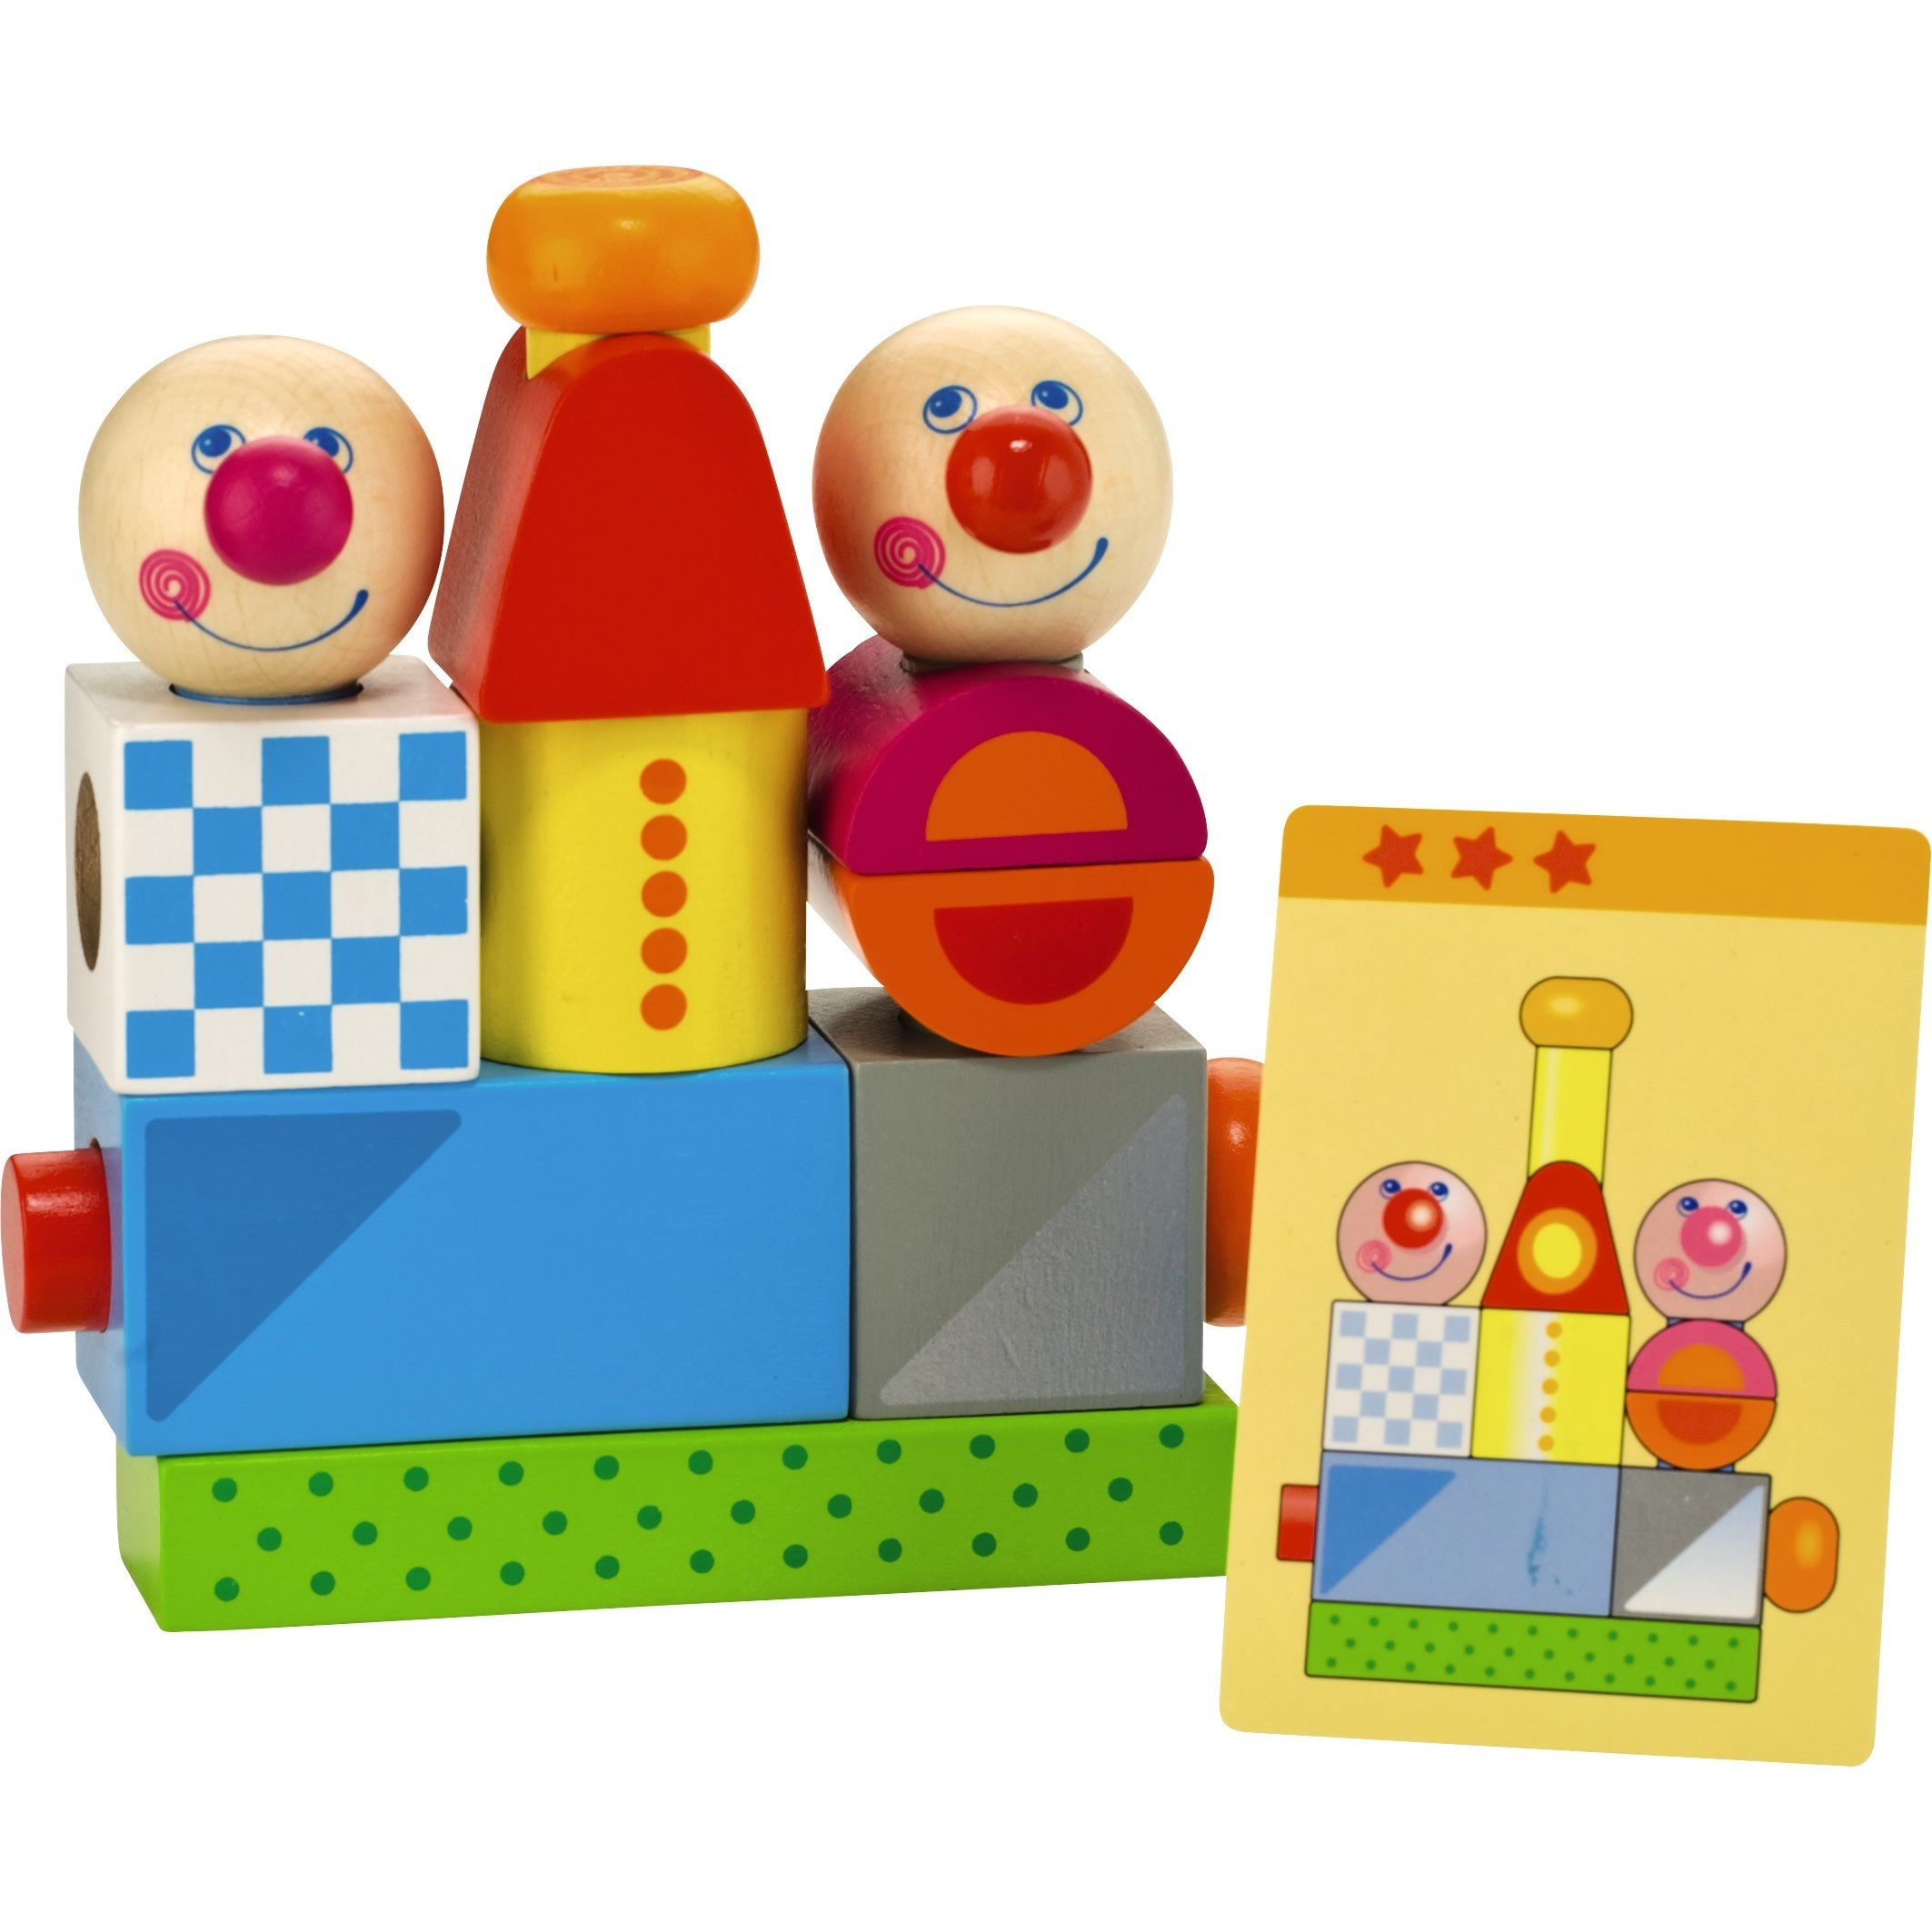 HABA Brain Builder Peg Set Building Blocks with Pattern Cards & 3 Levels of Difficulty for Ages 2+ by HABA (Image #1)